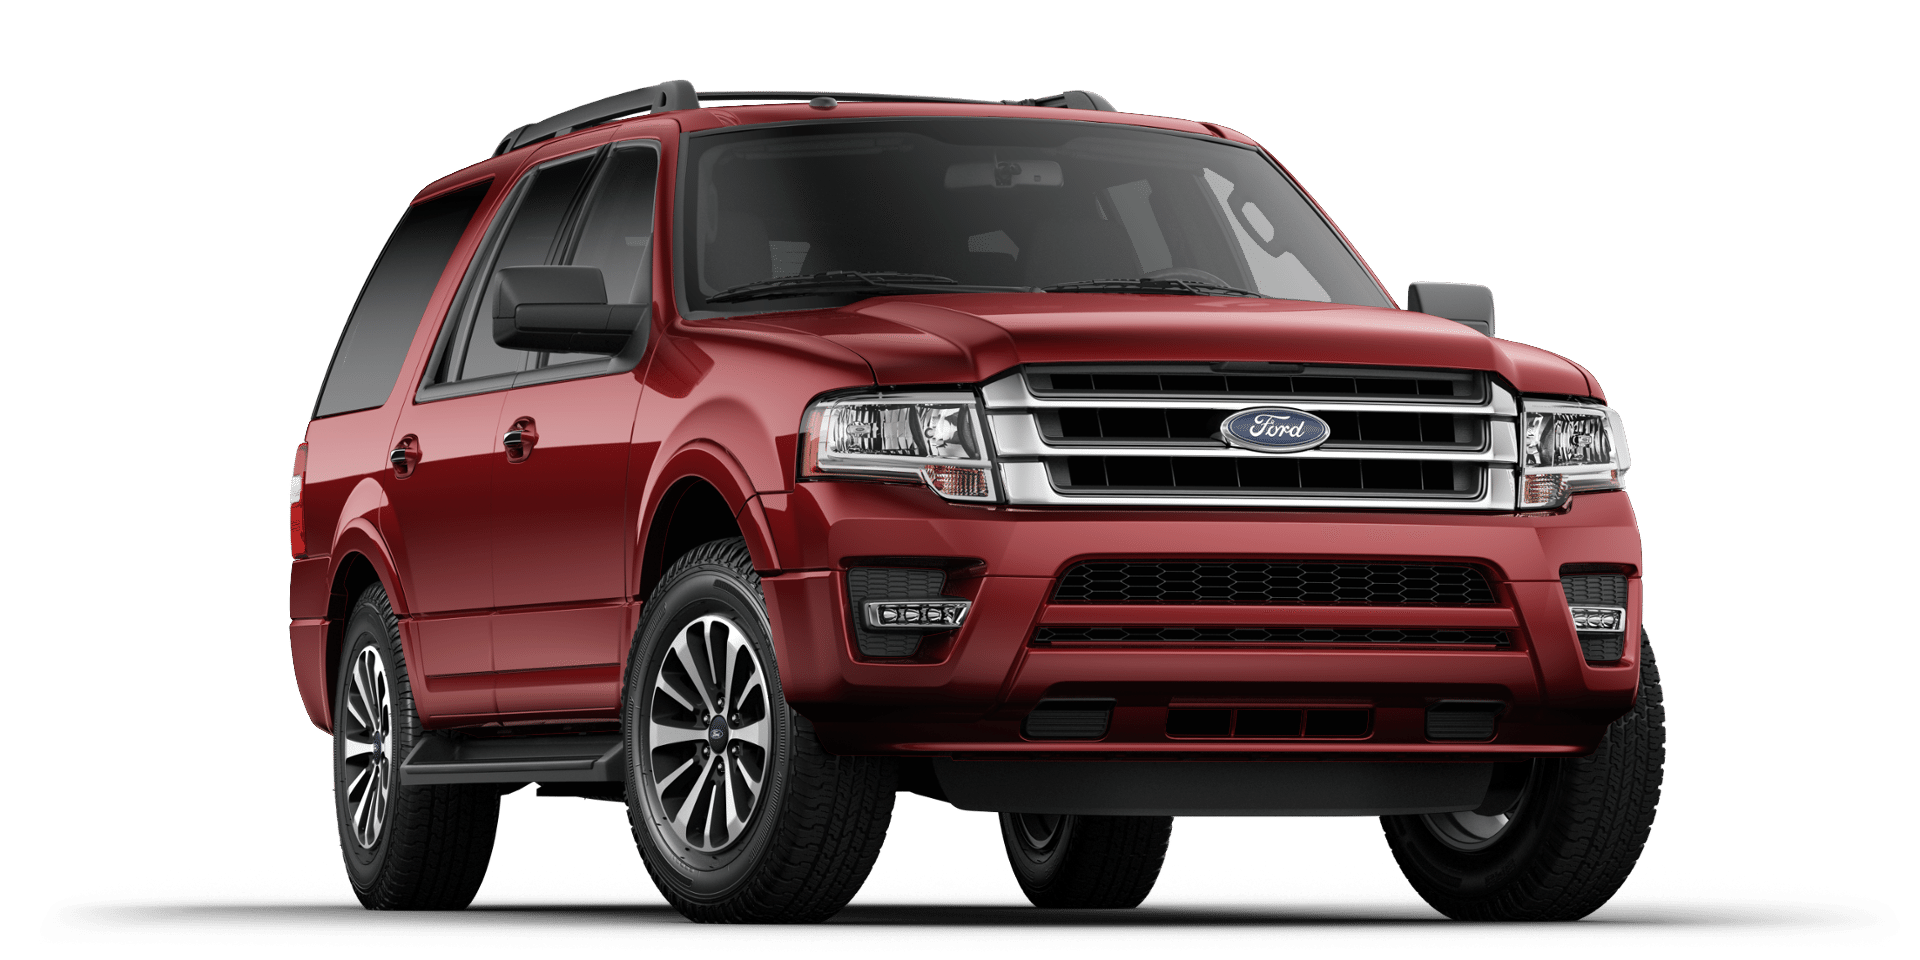 2017 Ford Expedition Arlington Heights